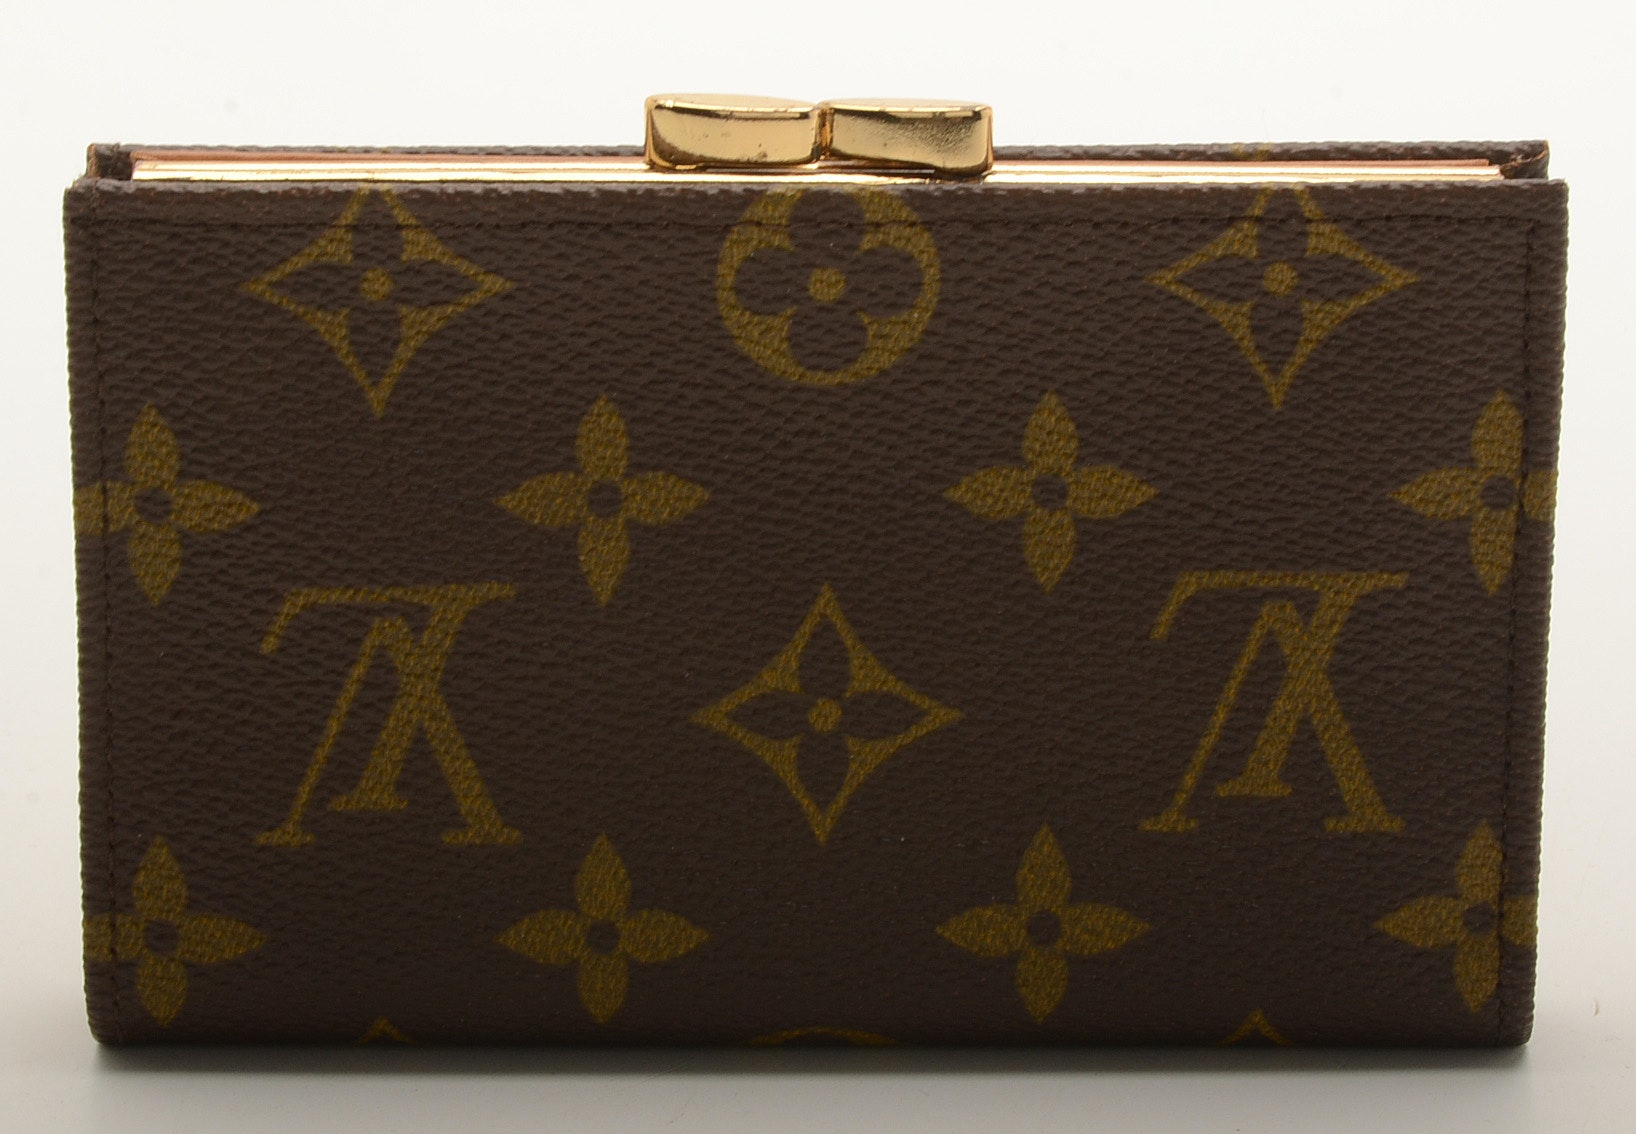 Vintage Louis Vuitton Monogram Wallet